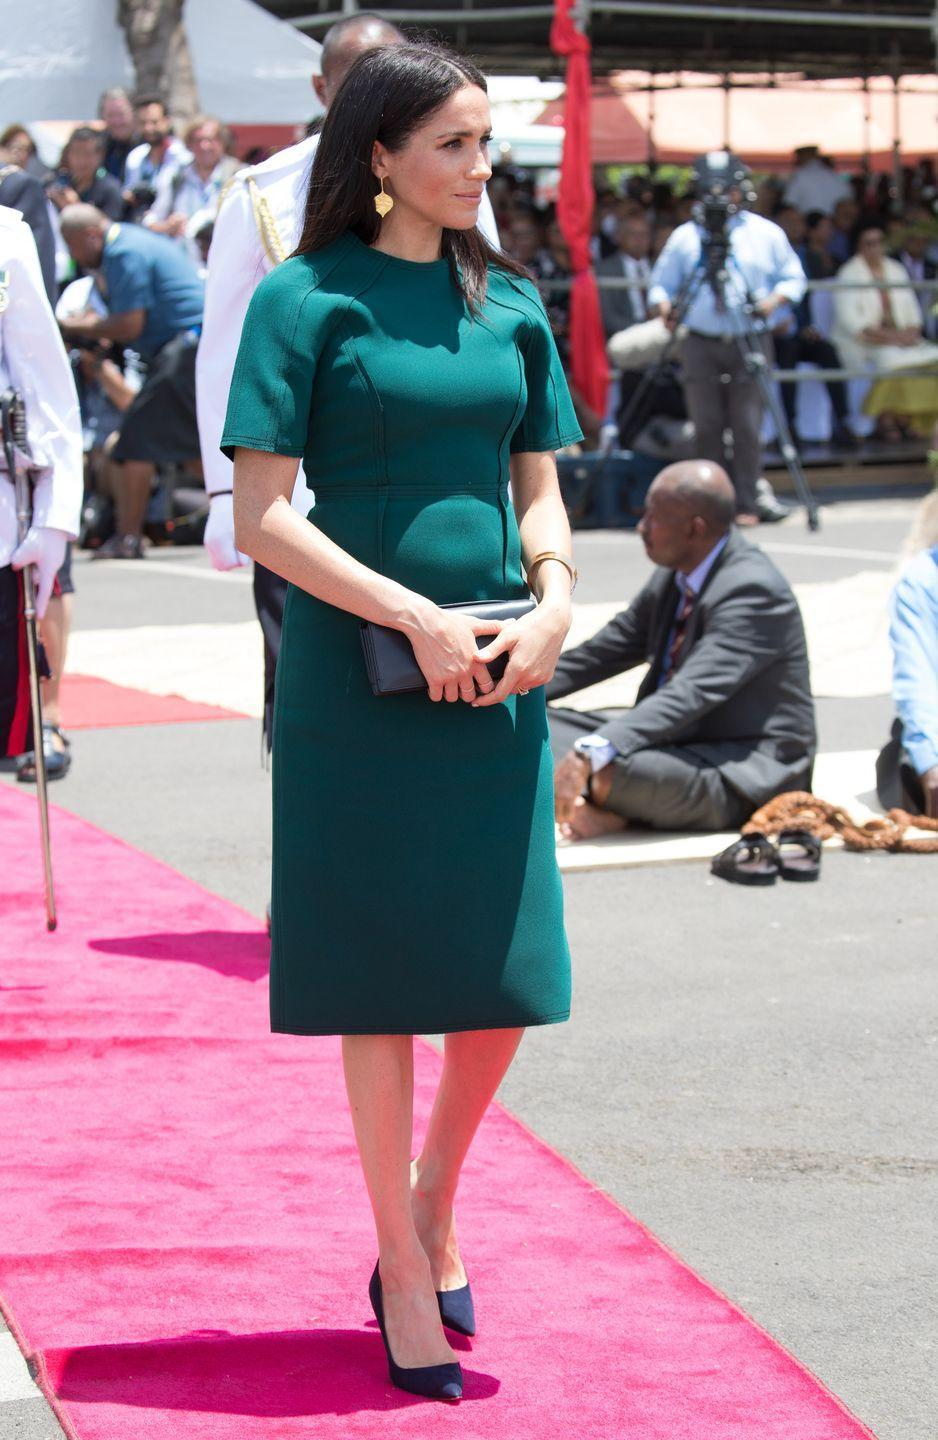 """<p>On her final day in Fiji, the Duchess wore a<a href=""""https://www.townandcountrymag.com/style/fashion-trends/a24175133/meghan-markle-green-jason-wu-dress-final-day-fiji/"""" rel=""""nofollow noopener"""" target=""""_blank"""" data-ylk=""""slk:green mid-length dress"""" class=""""link rapid-noclick-resp""""> green mid-length dress</a> by Jason Wu, gold drop earrings, and black pumps to the unveiling of the Labalaba Statue. </p>"""